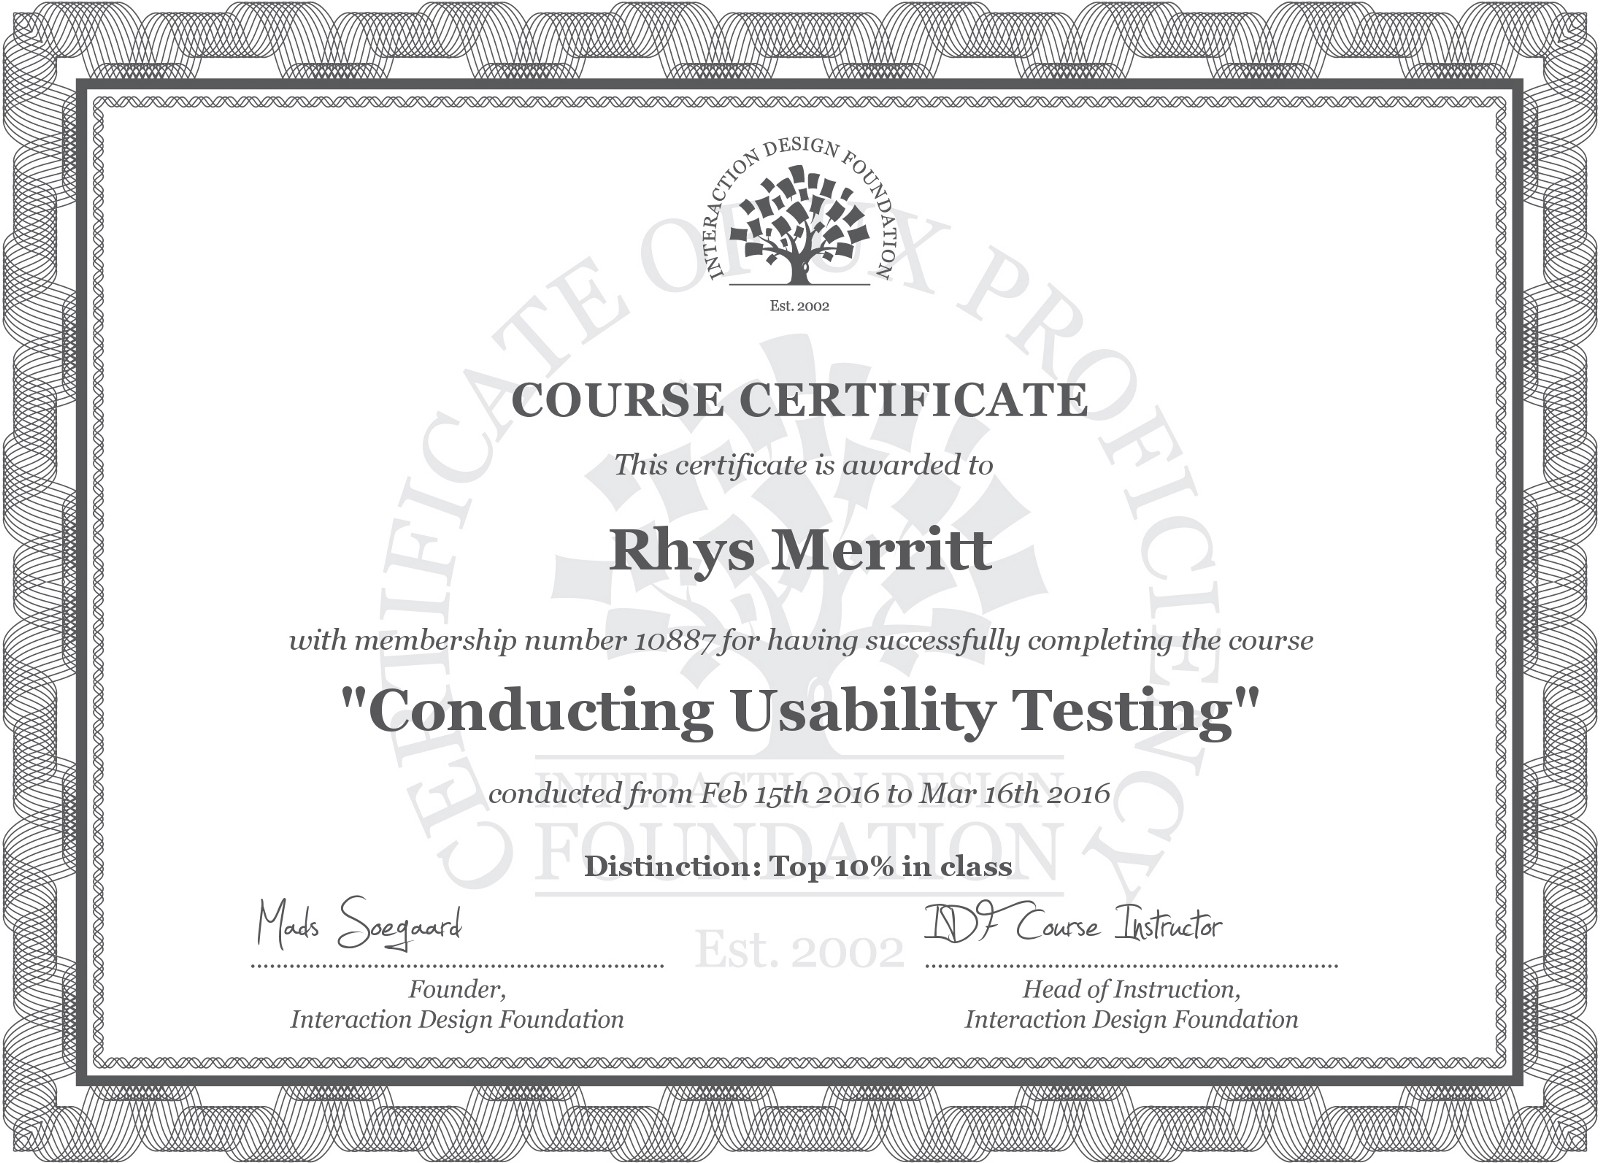 Review of interaction design foundation rhys merritt medium the highest value course that filled a gap in our team was conducting usability testing most importantly though is not that we couldnt conduct usability xflitez Choice Image